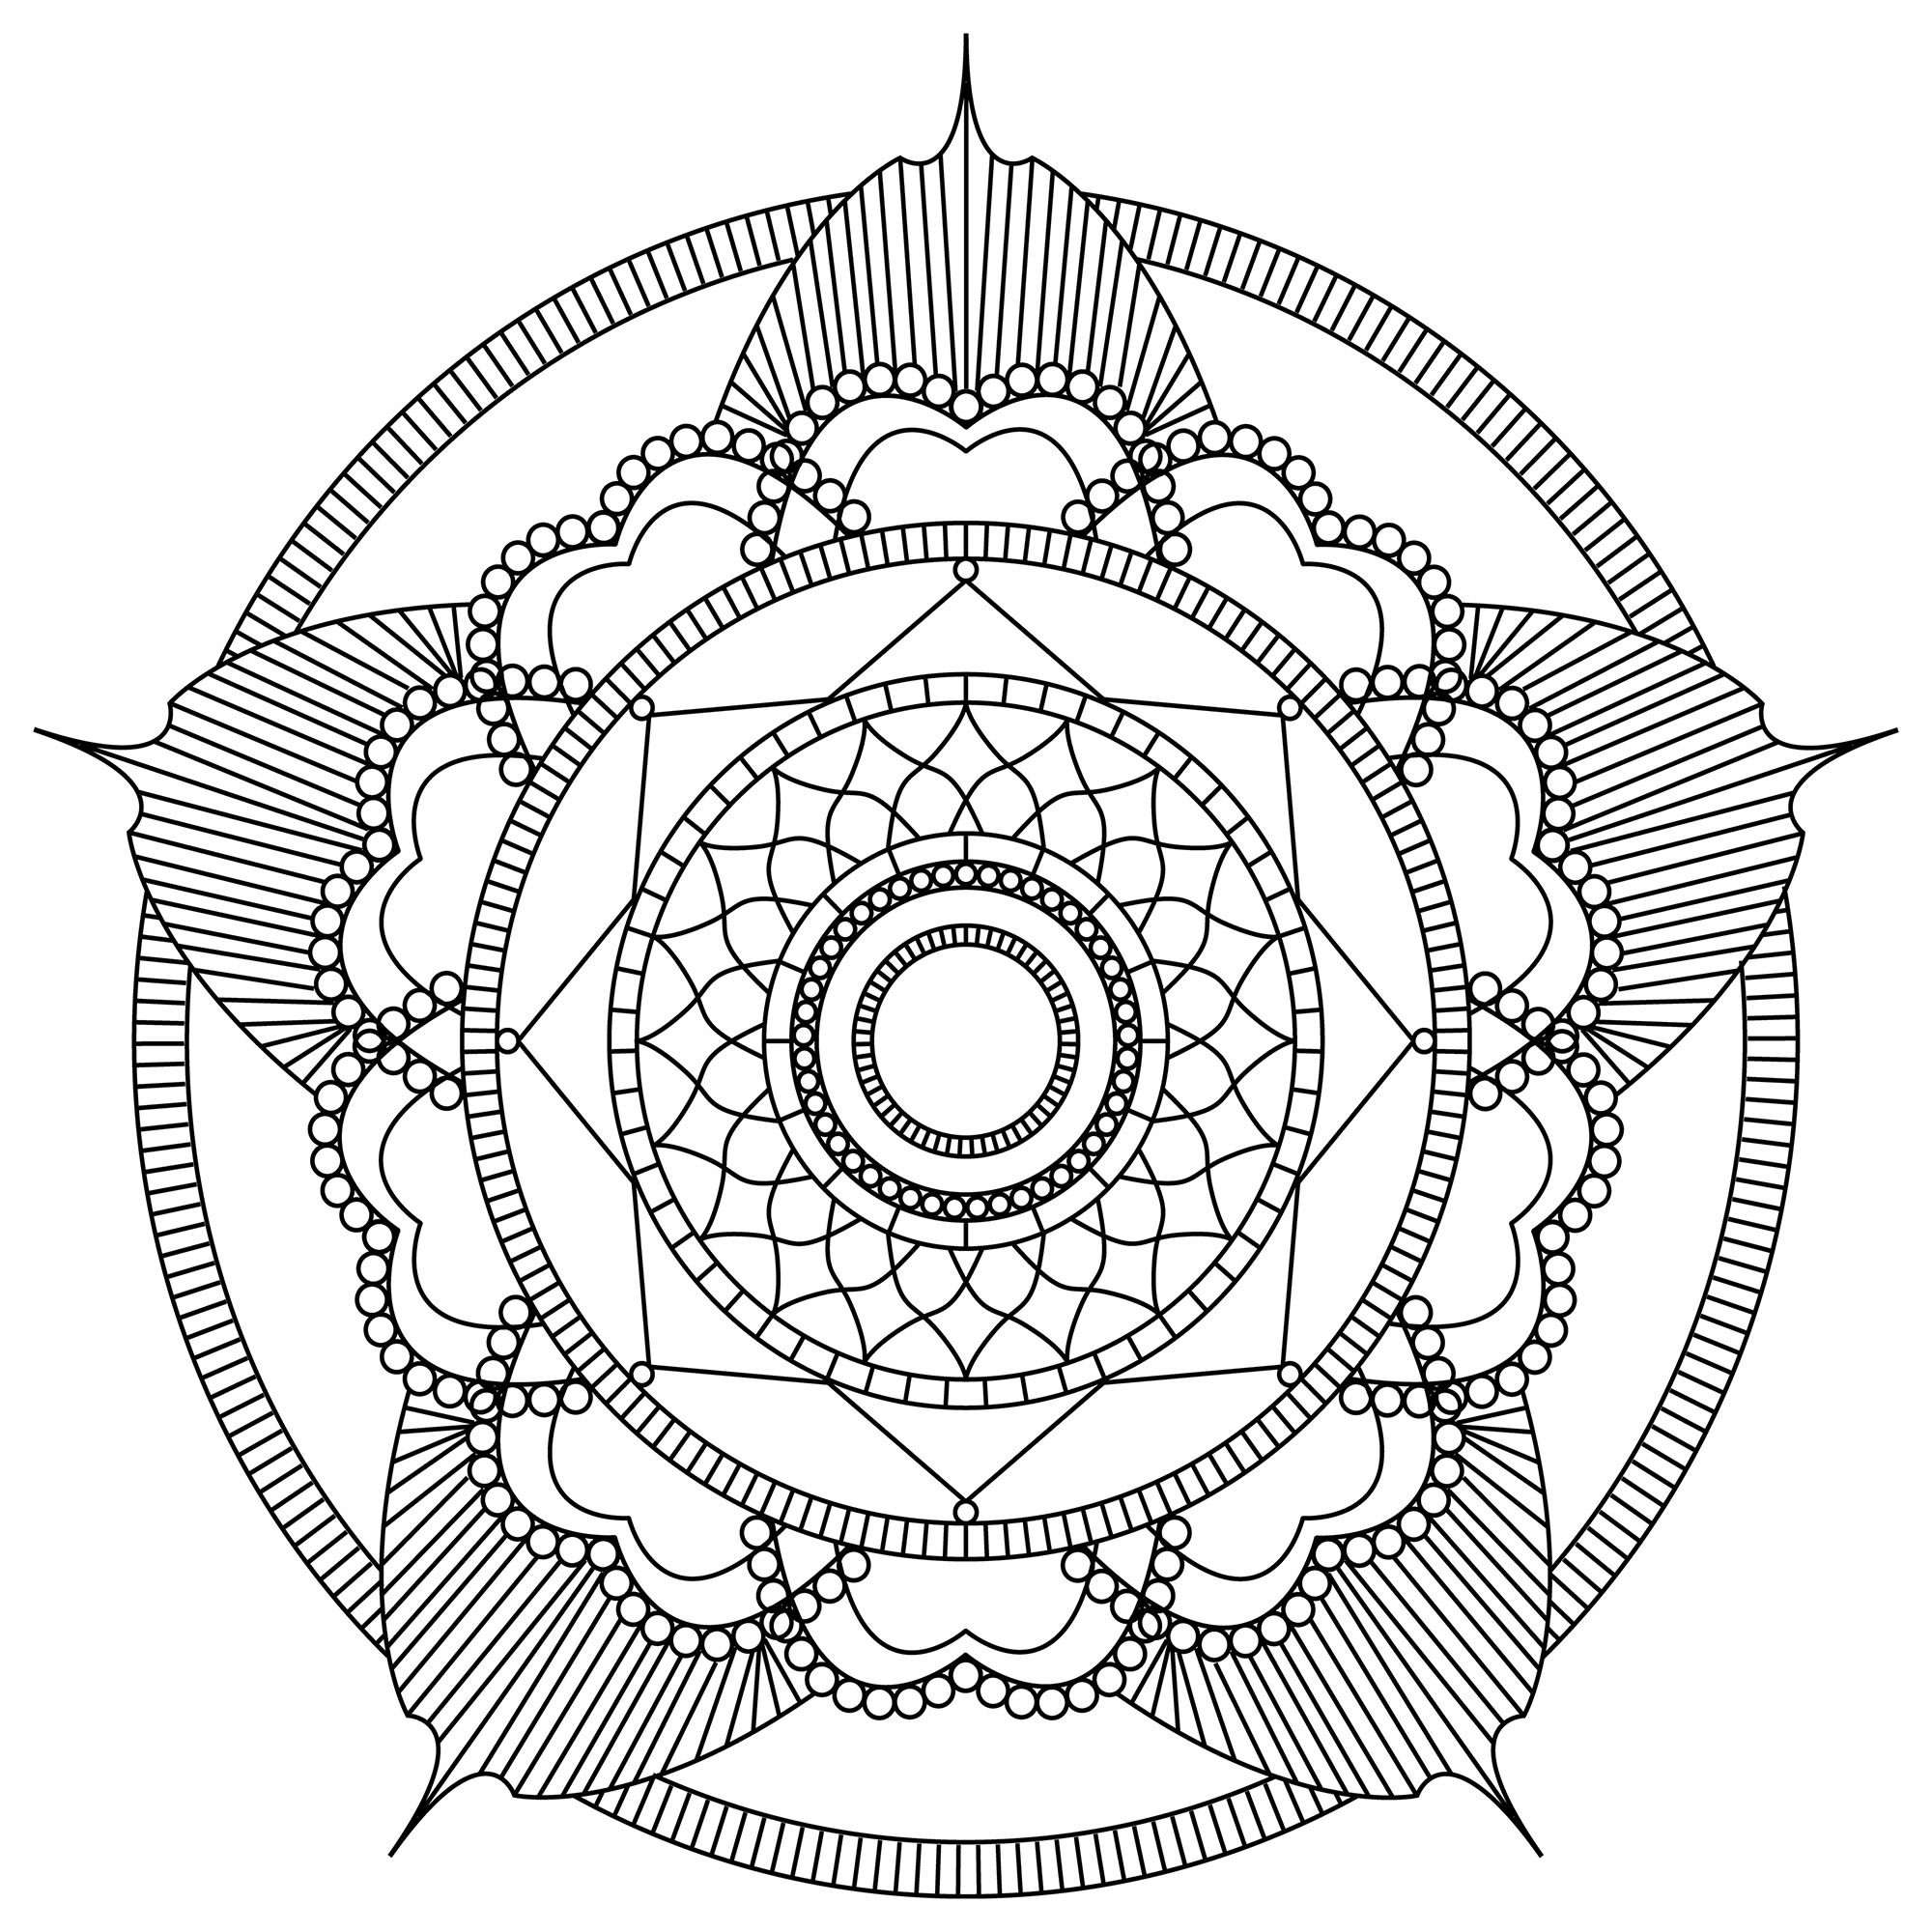 Magnificent Mandala to print and color